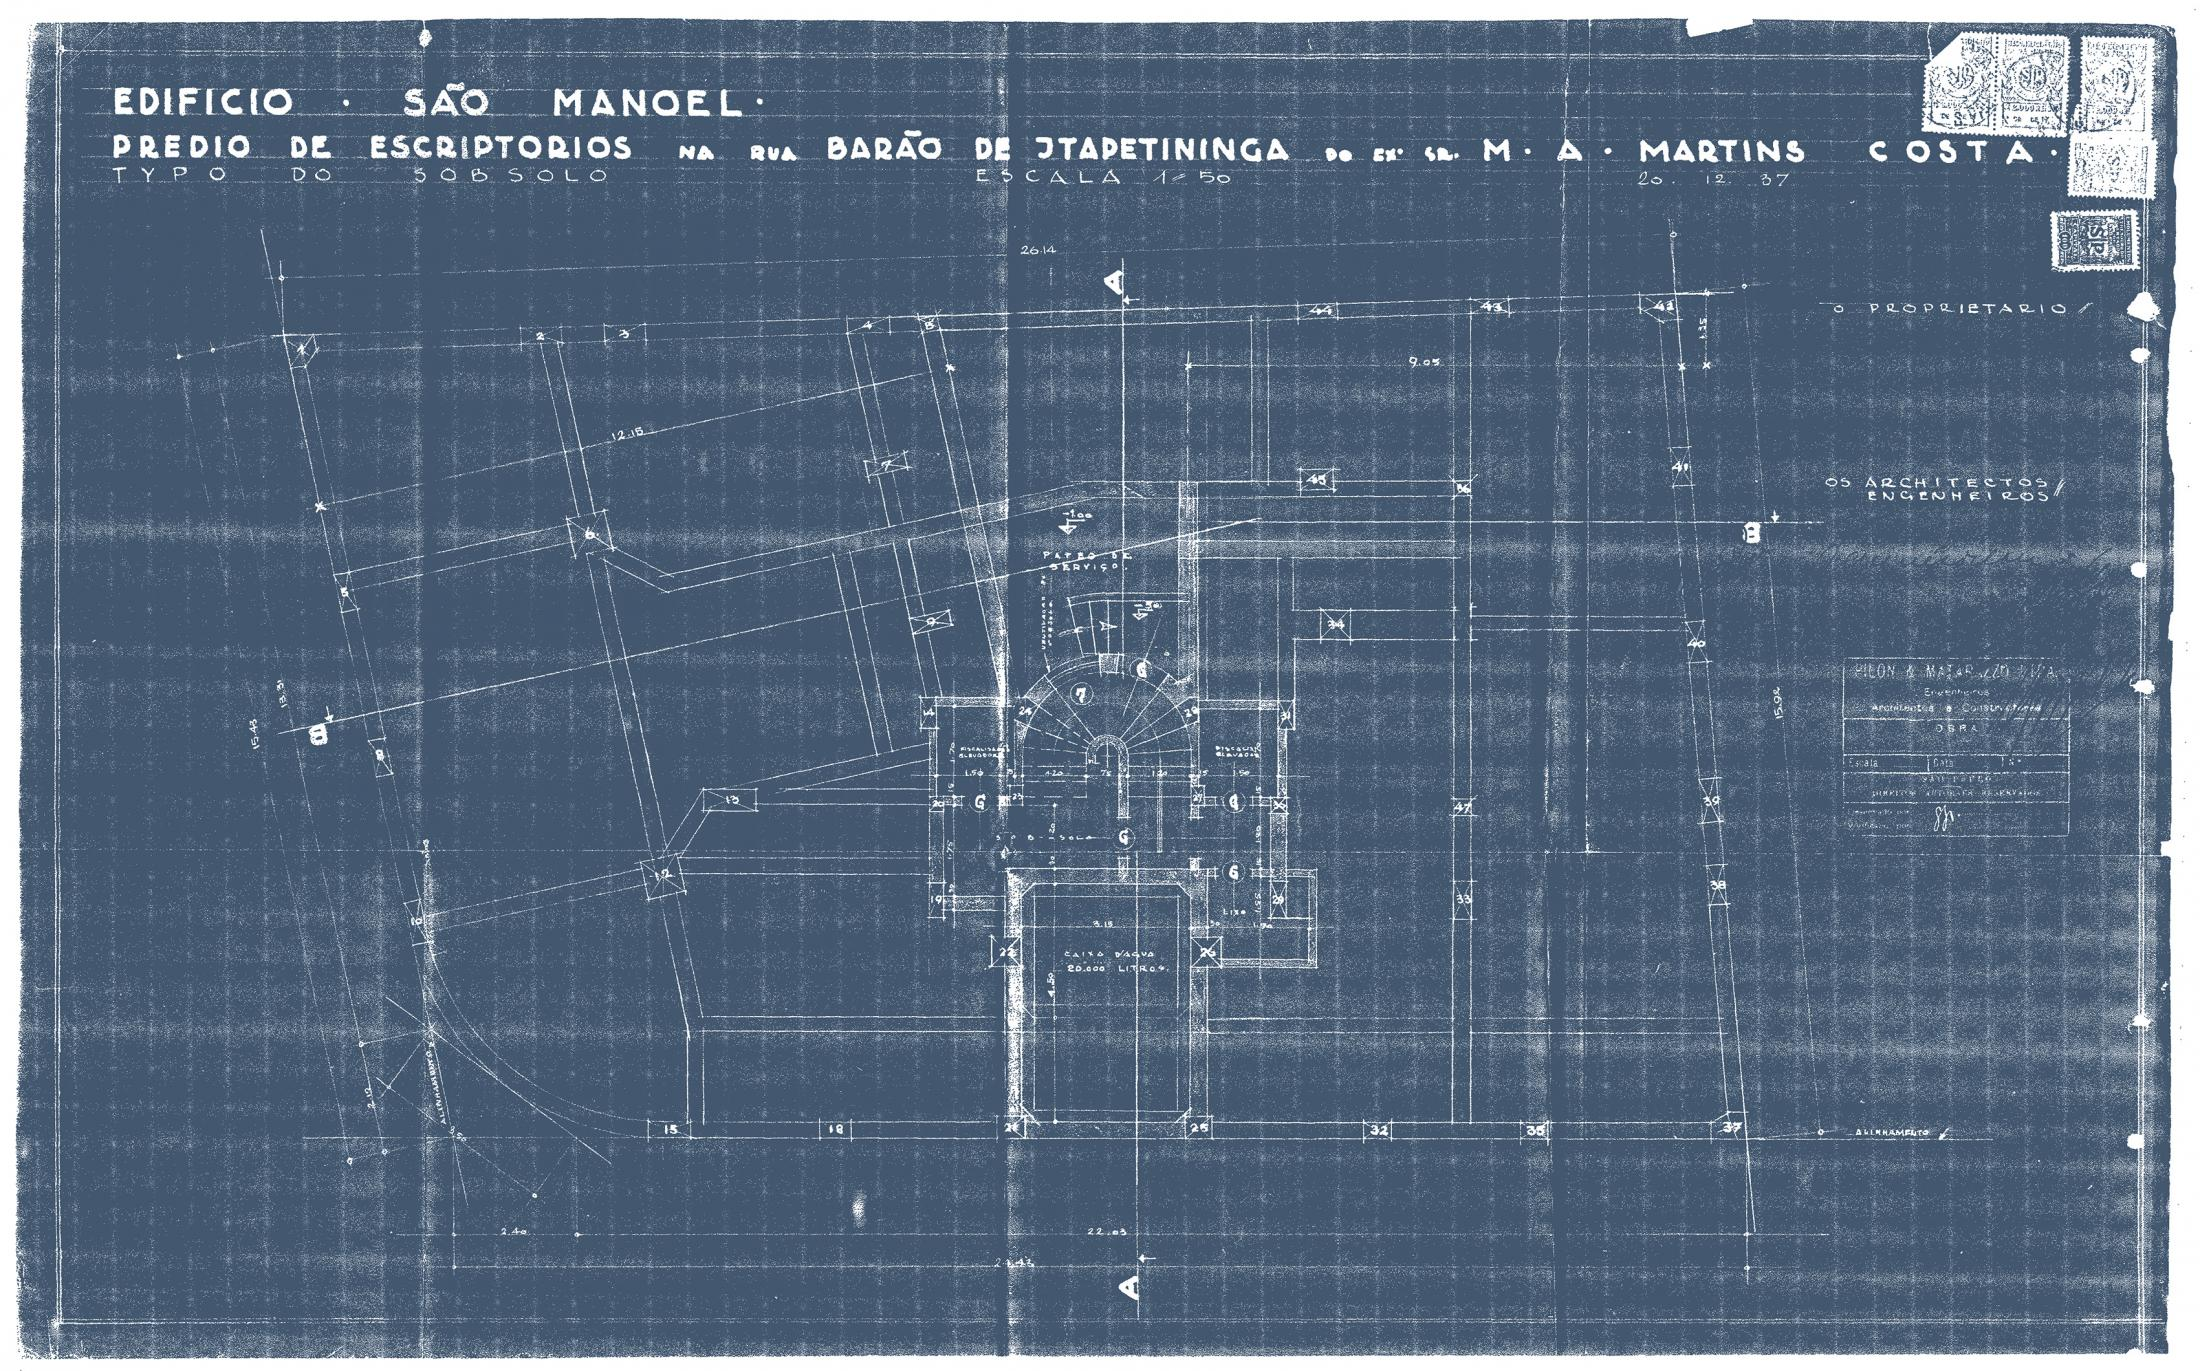 Blueprints from the 'Sao Manoel' building. São Paulo, 1937. Municipal Public Archive from the City of São Paulo.